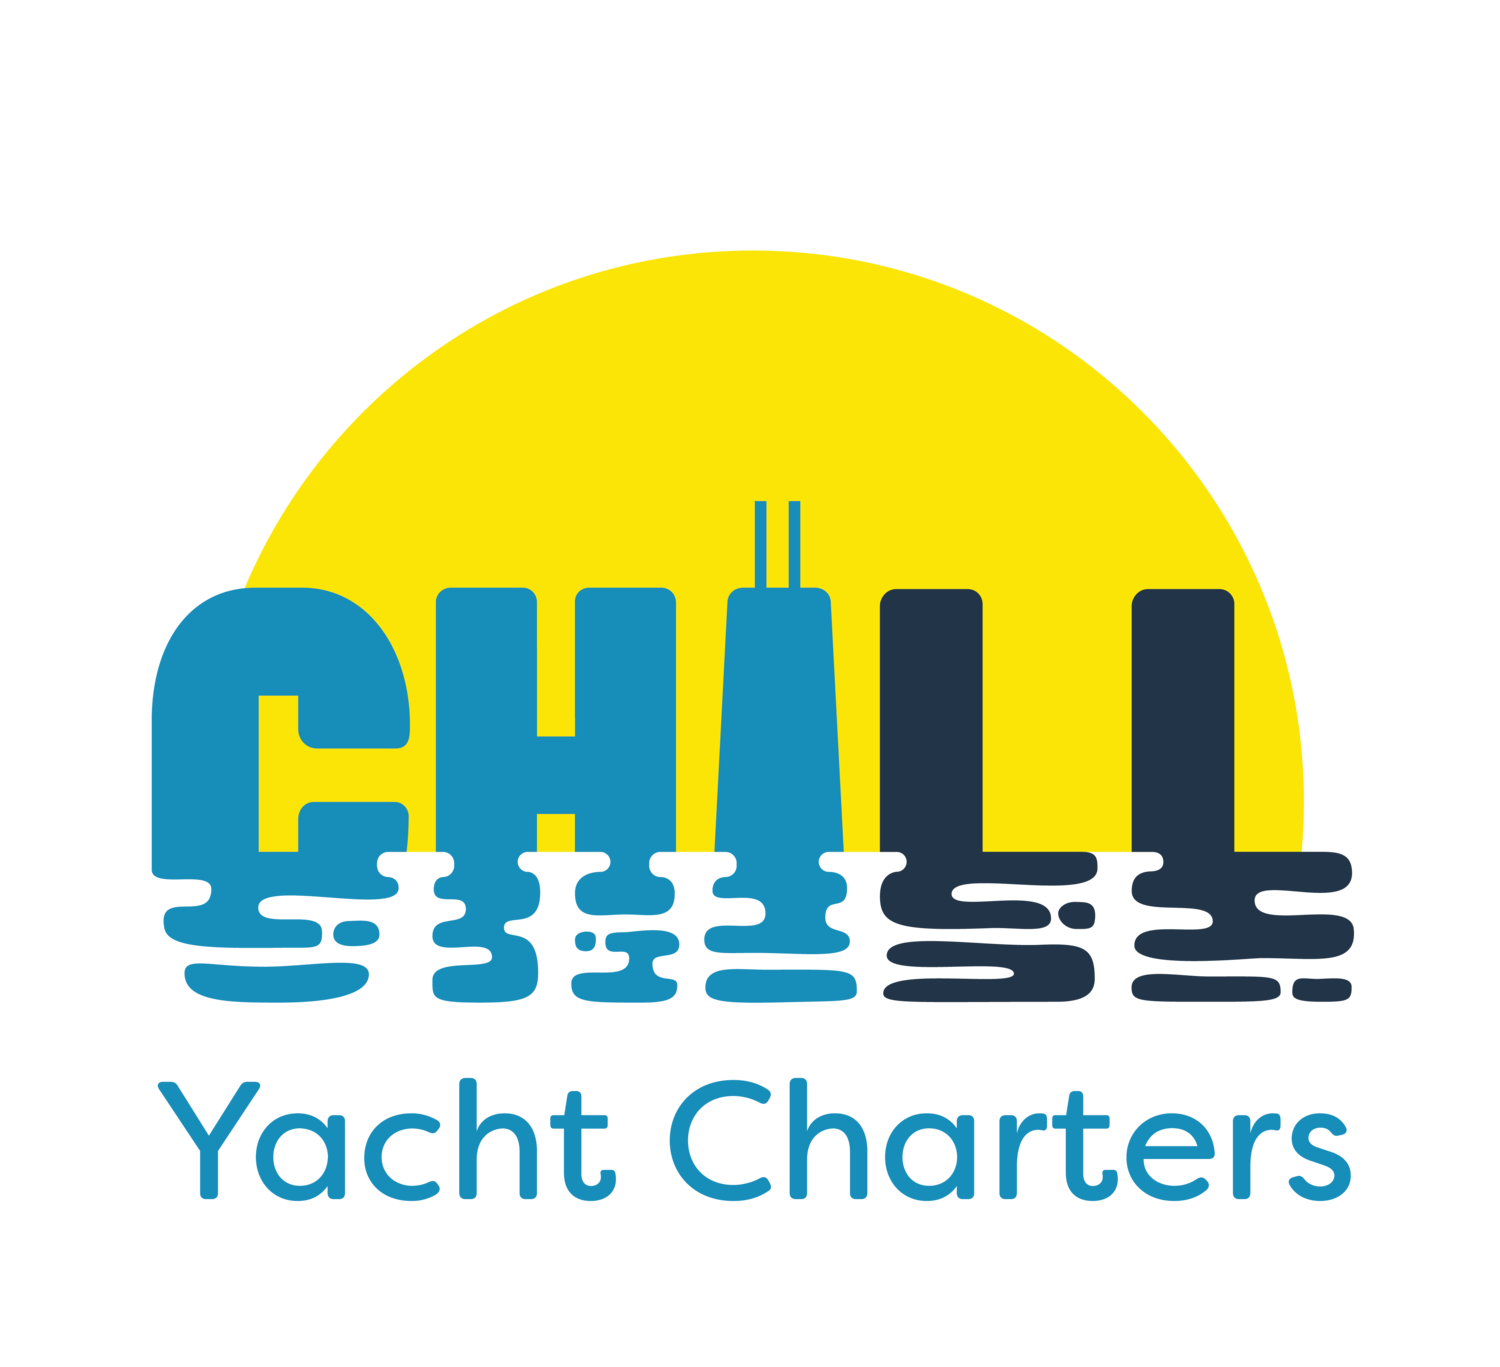 CHILL Yacht Charters